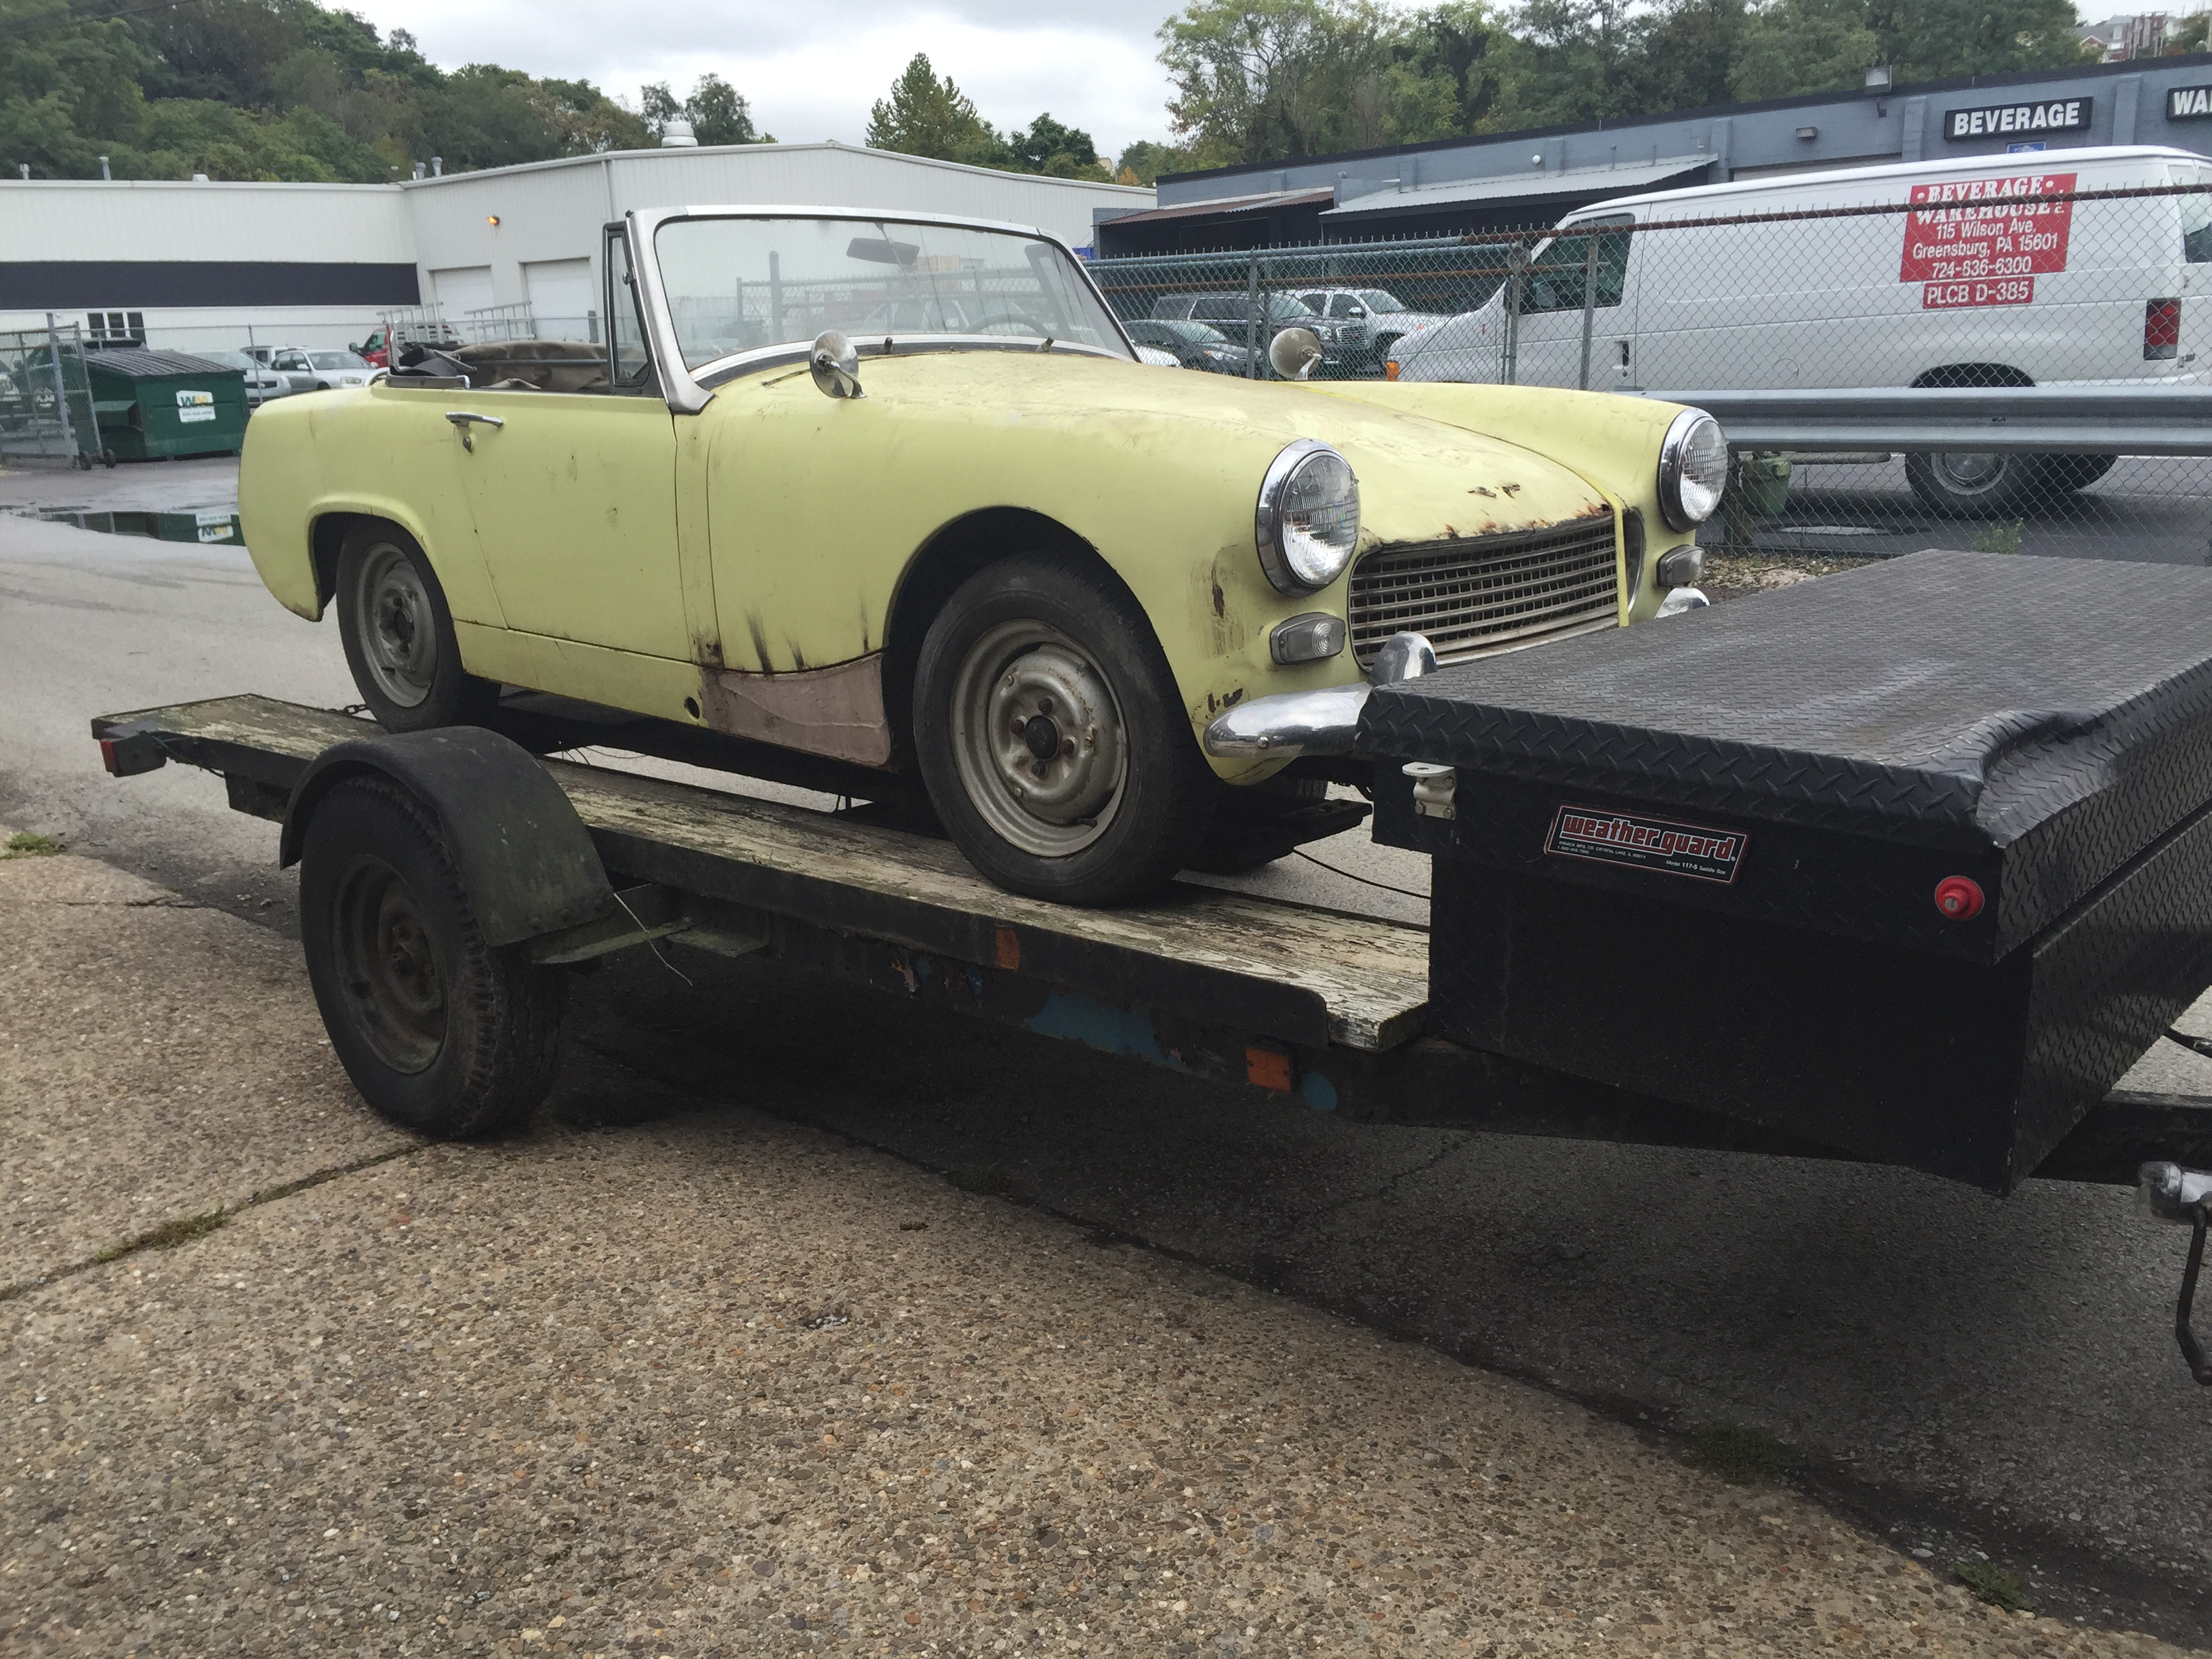 Austin Healey Sprite – Vintage Sports and Specialty Cars